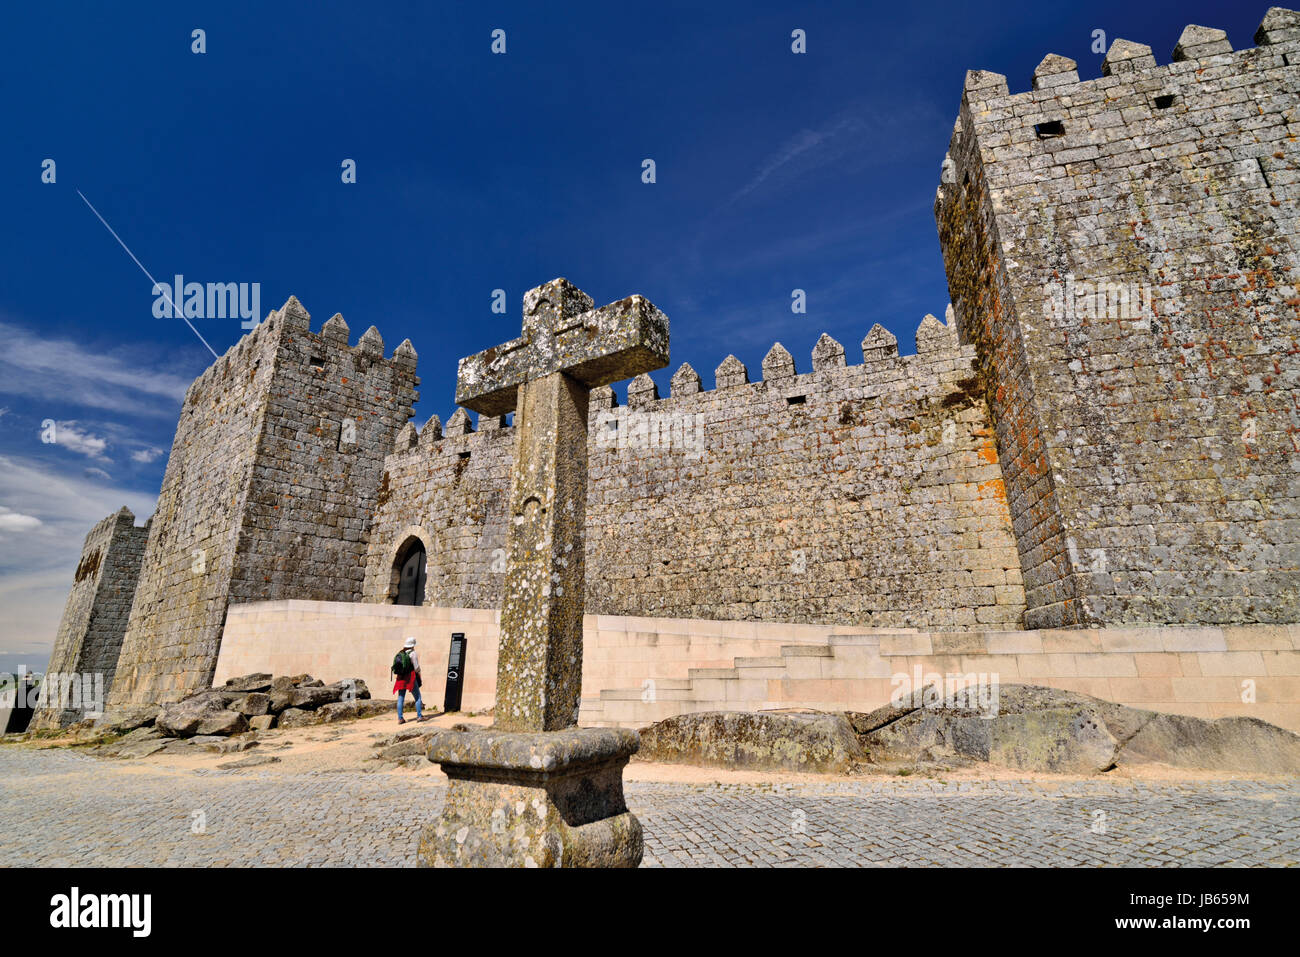 Portugal: External view of 11th century castle of historic village Trancoso - Stock Image